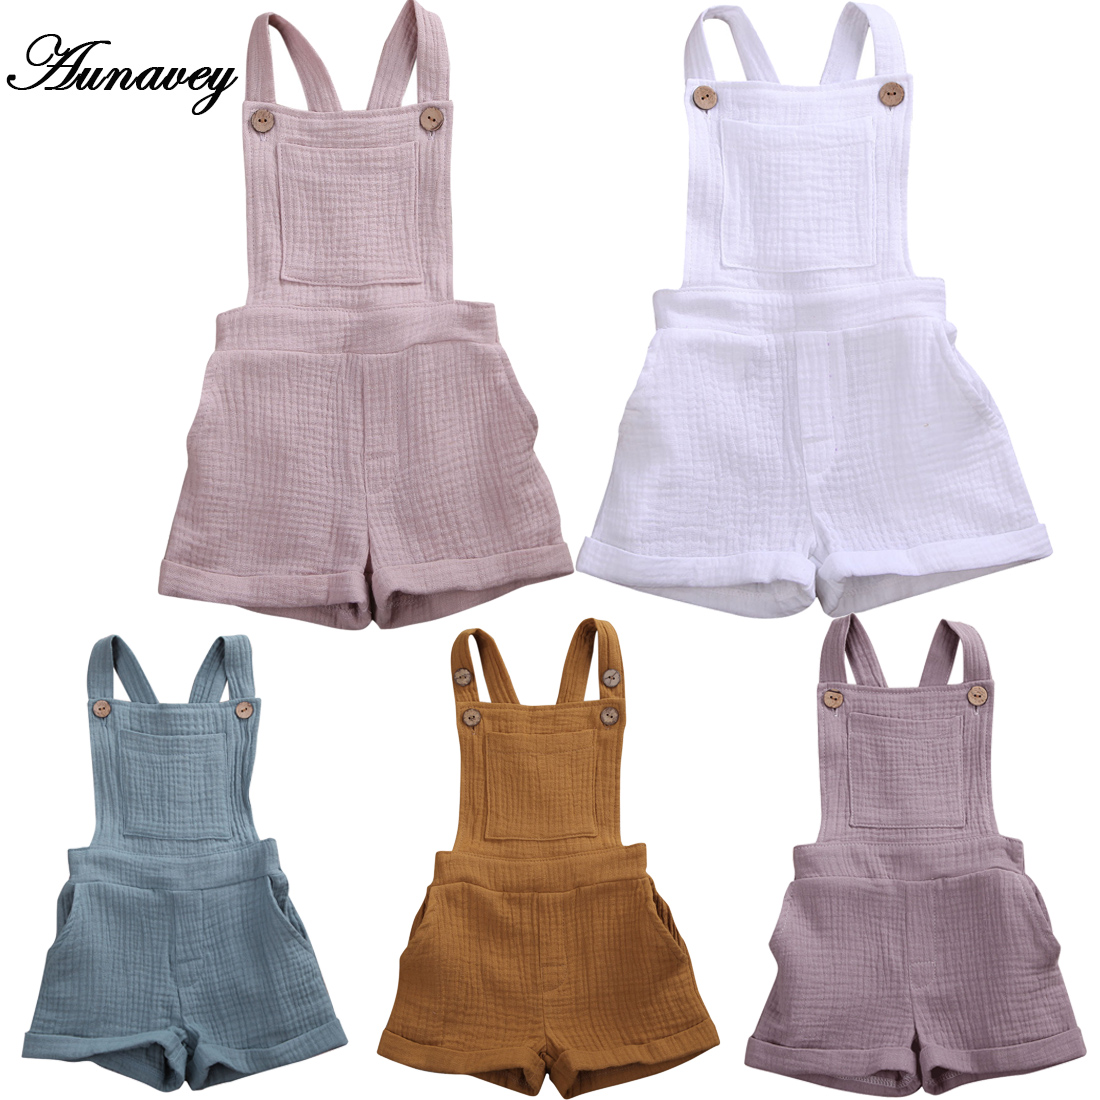 Suspender Ruffles Shorts Overall Outfit Aunavey Baby Girls Suspender Pants Set Striped Short Sleeve Shirt